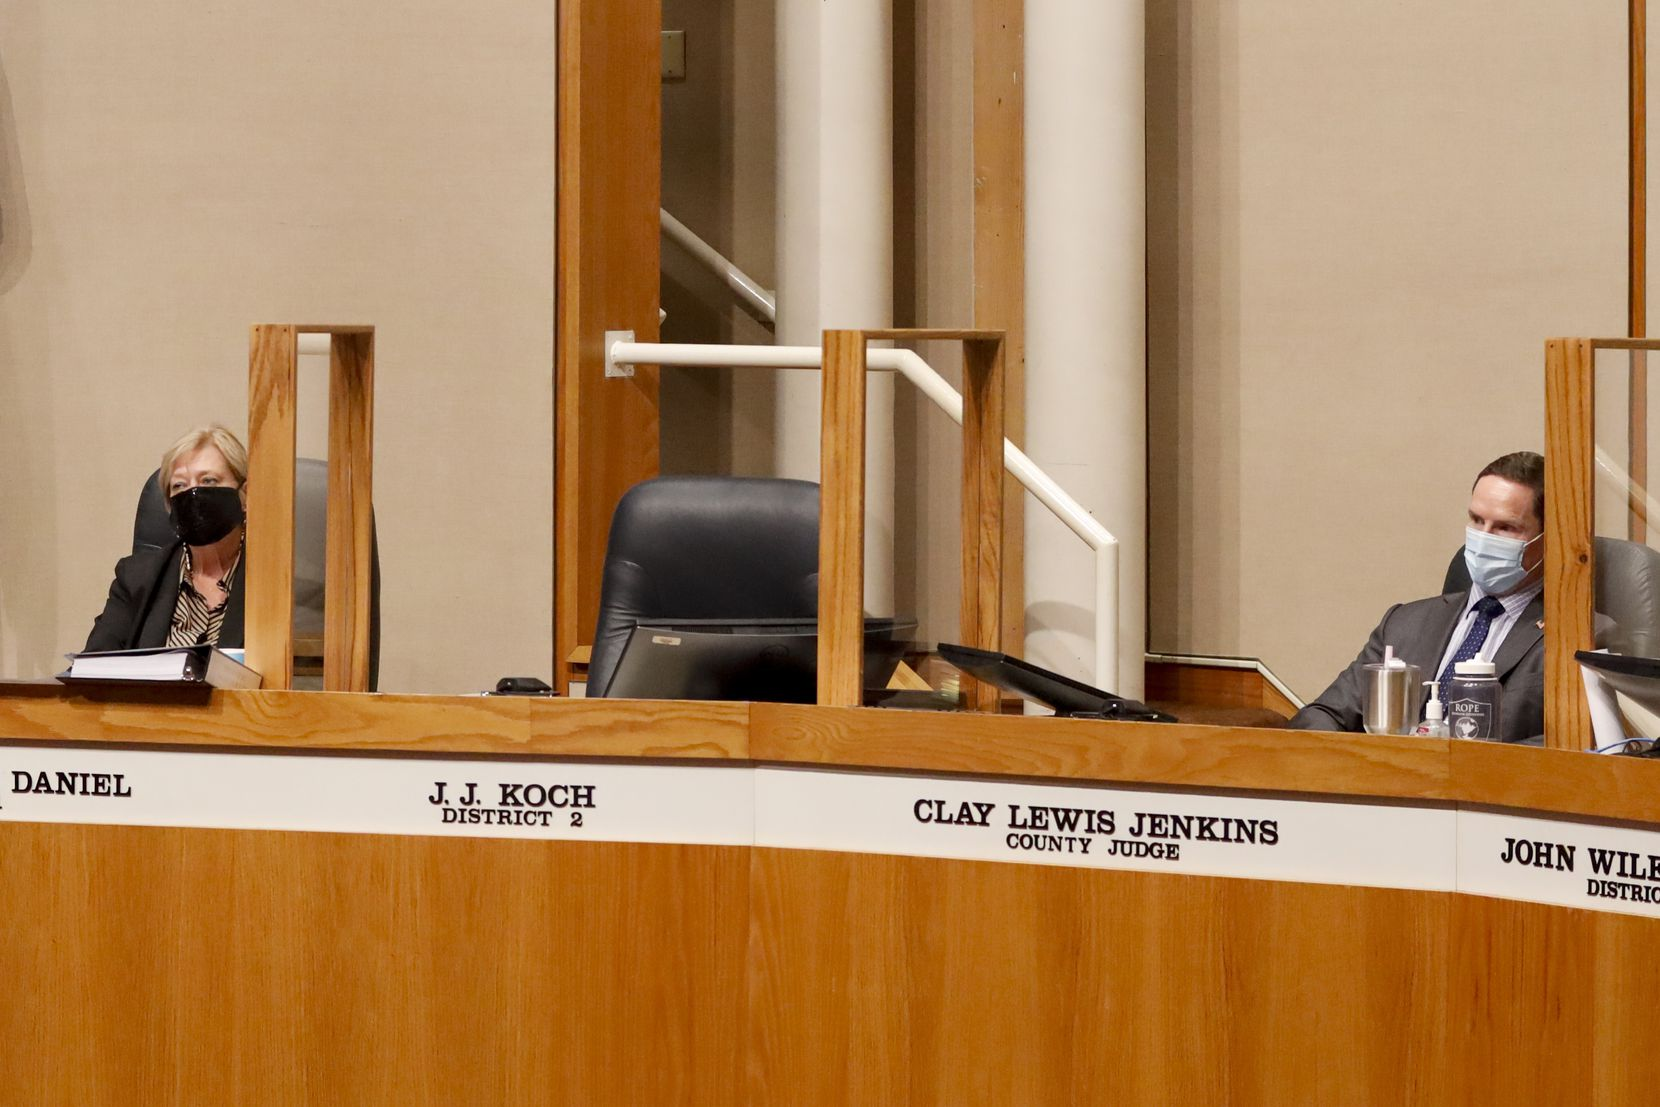 Dallas County Judge Clay Jenkins (right) and County Commissioner Theresa Daniel sit next to the empty chair of County Commissioner J.J. Koch during a Dallas County Commissioners Court meeting on Tuesday, Aug. 3, 2021, in Dallas. Koch was escorted from the meeting for refusing to wear a mask. (Elias Valverde II/The Dallas Morning News)